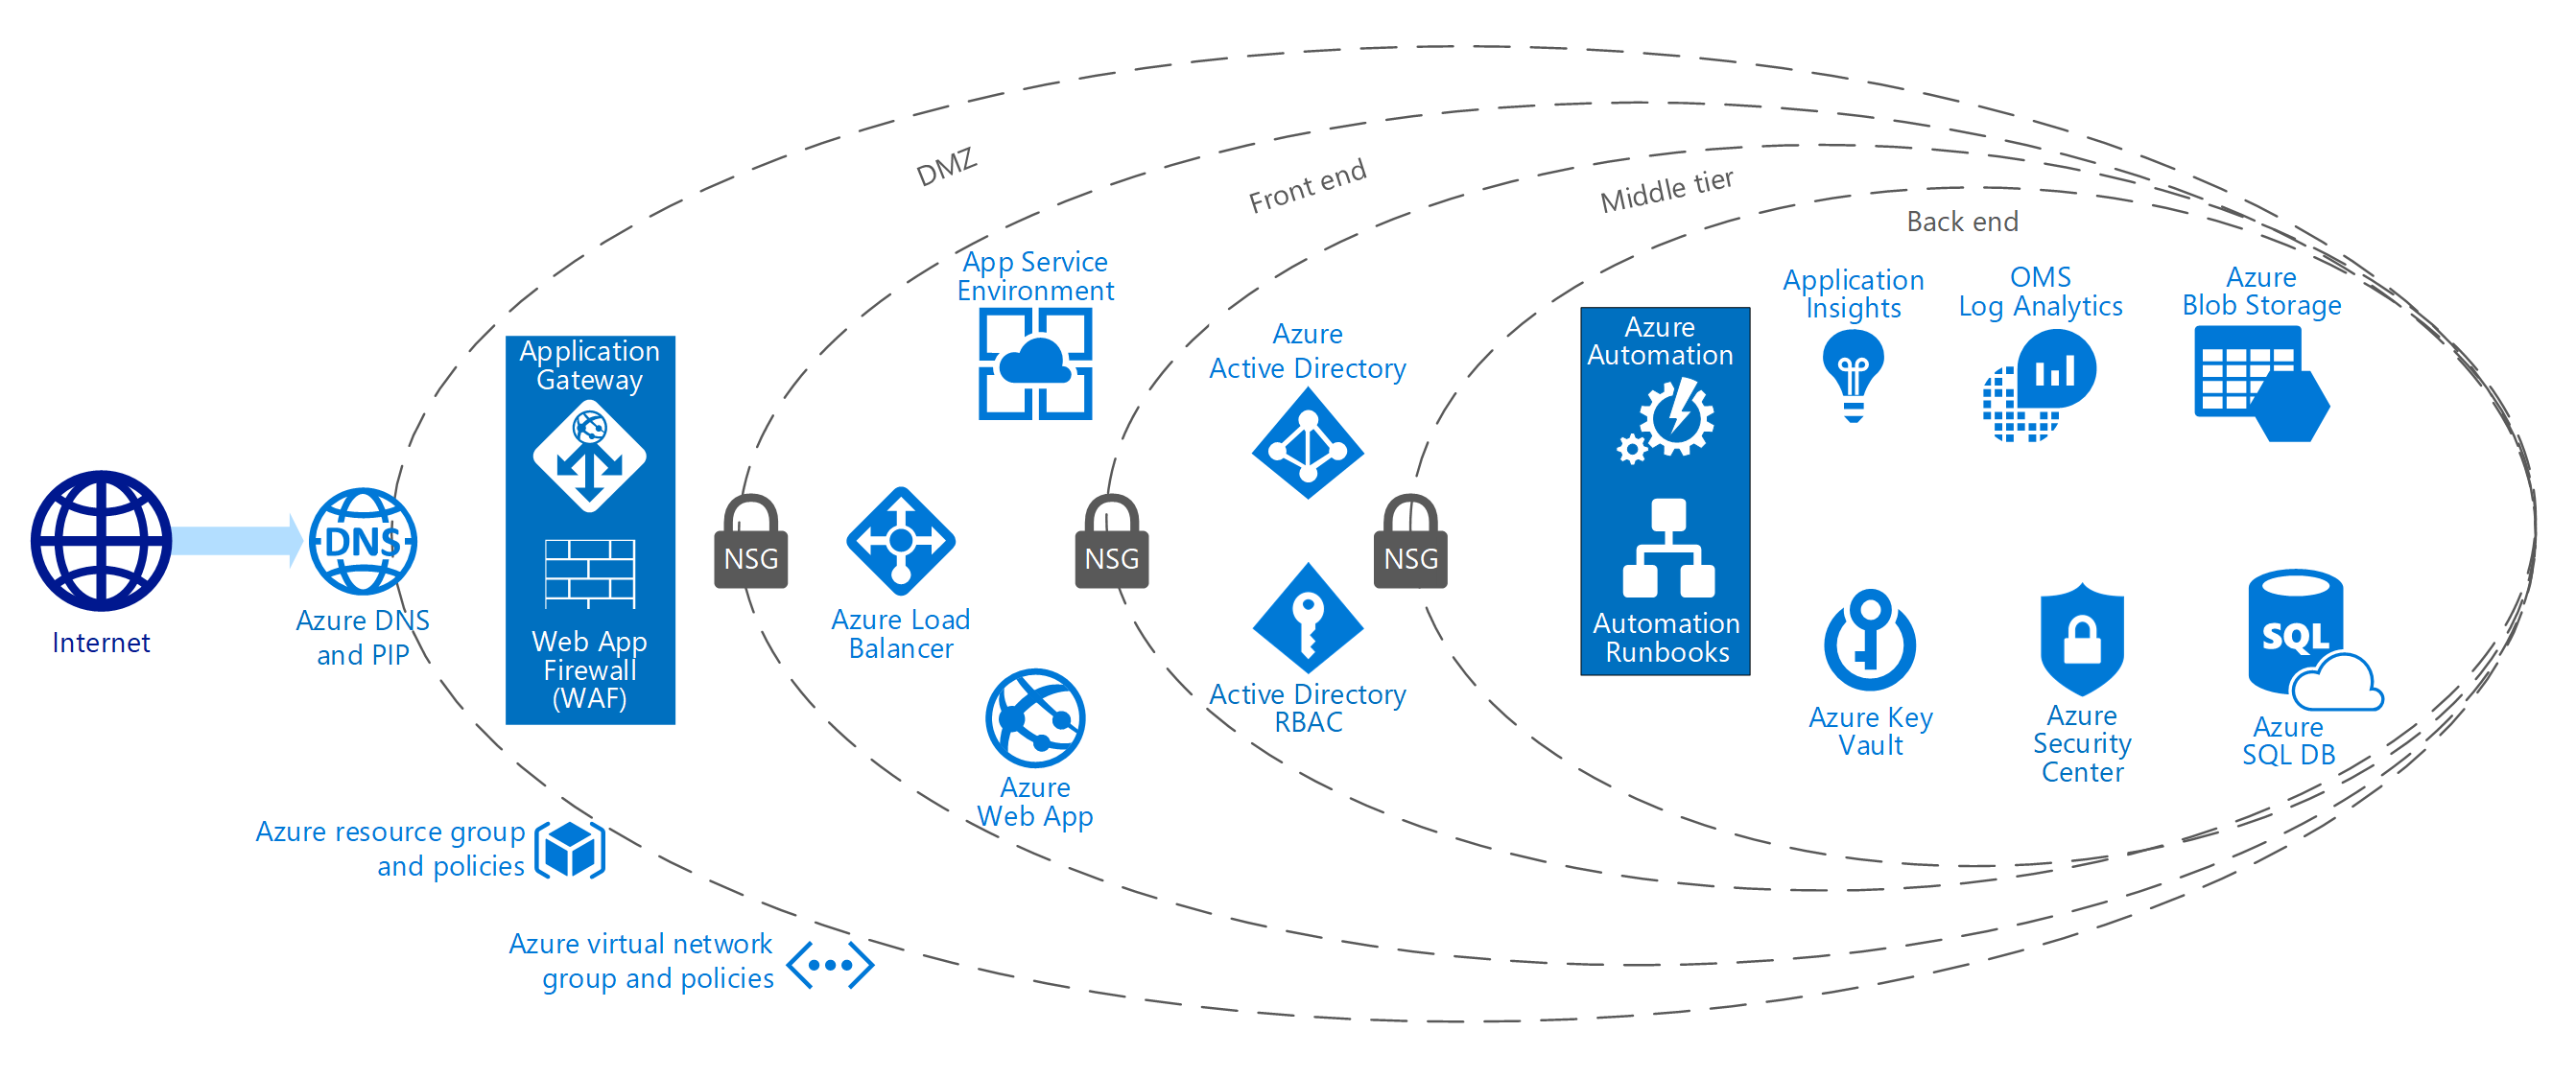 Resultado De Imagen De Toma De Requerimientos Blueprints Diseno Tecnico Azure Blueprints Web Application